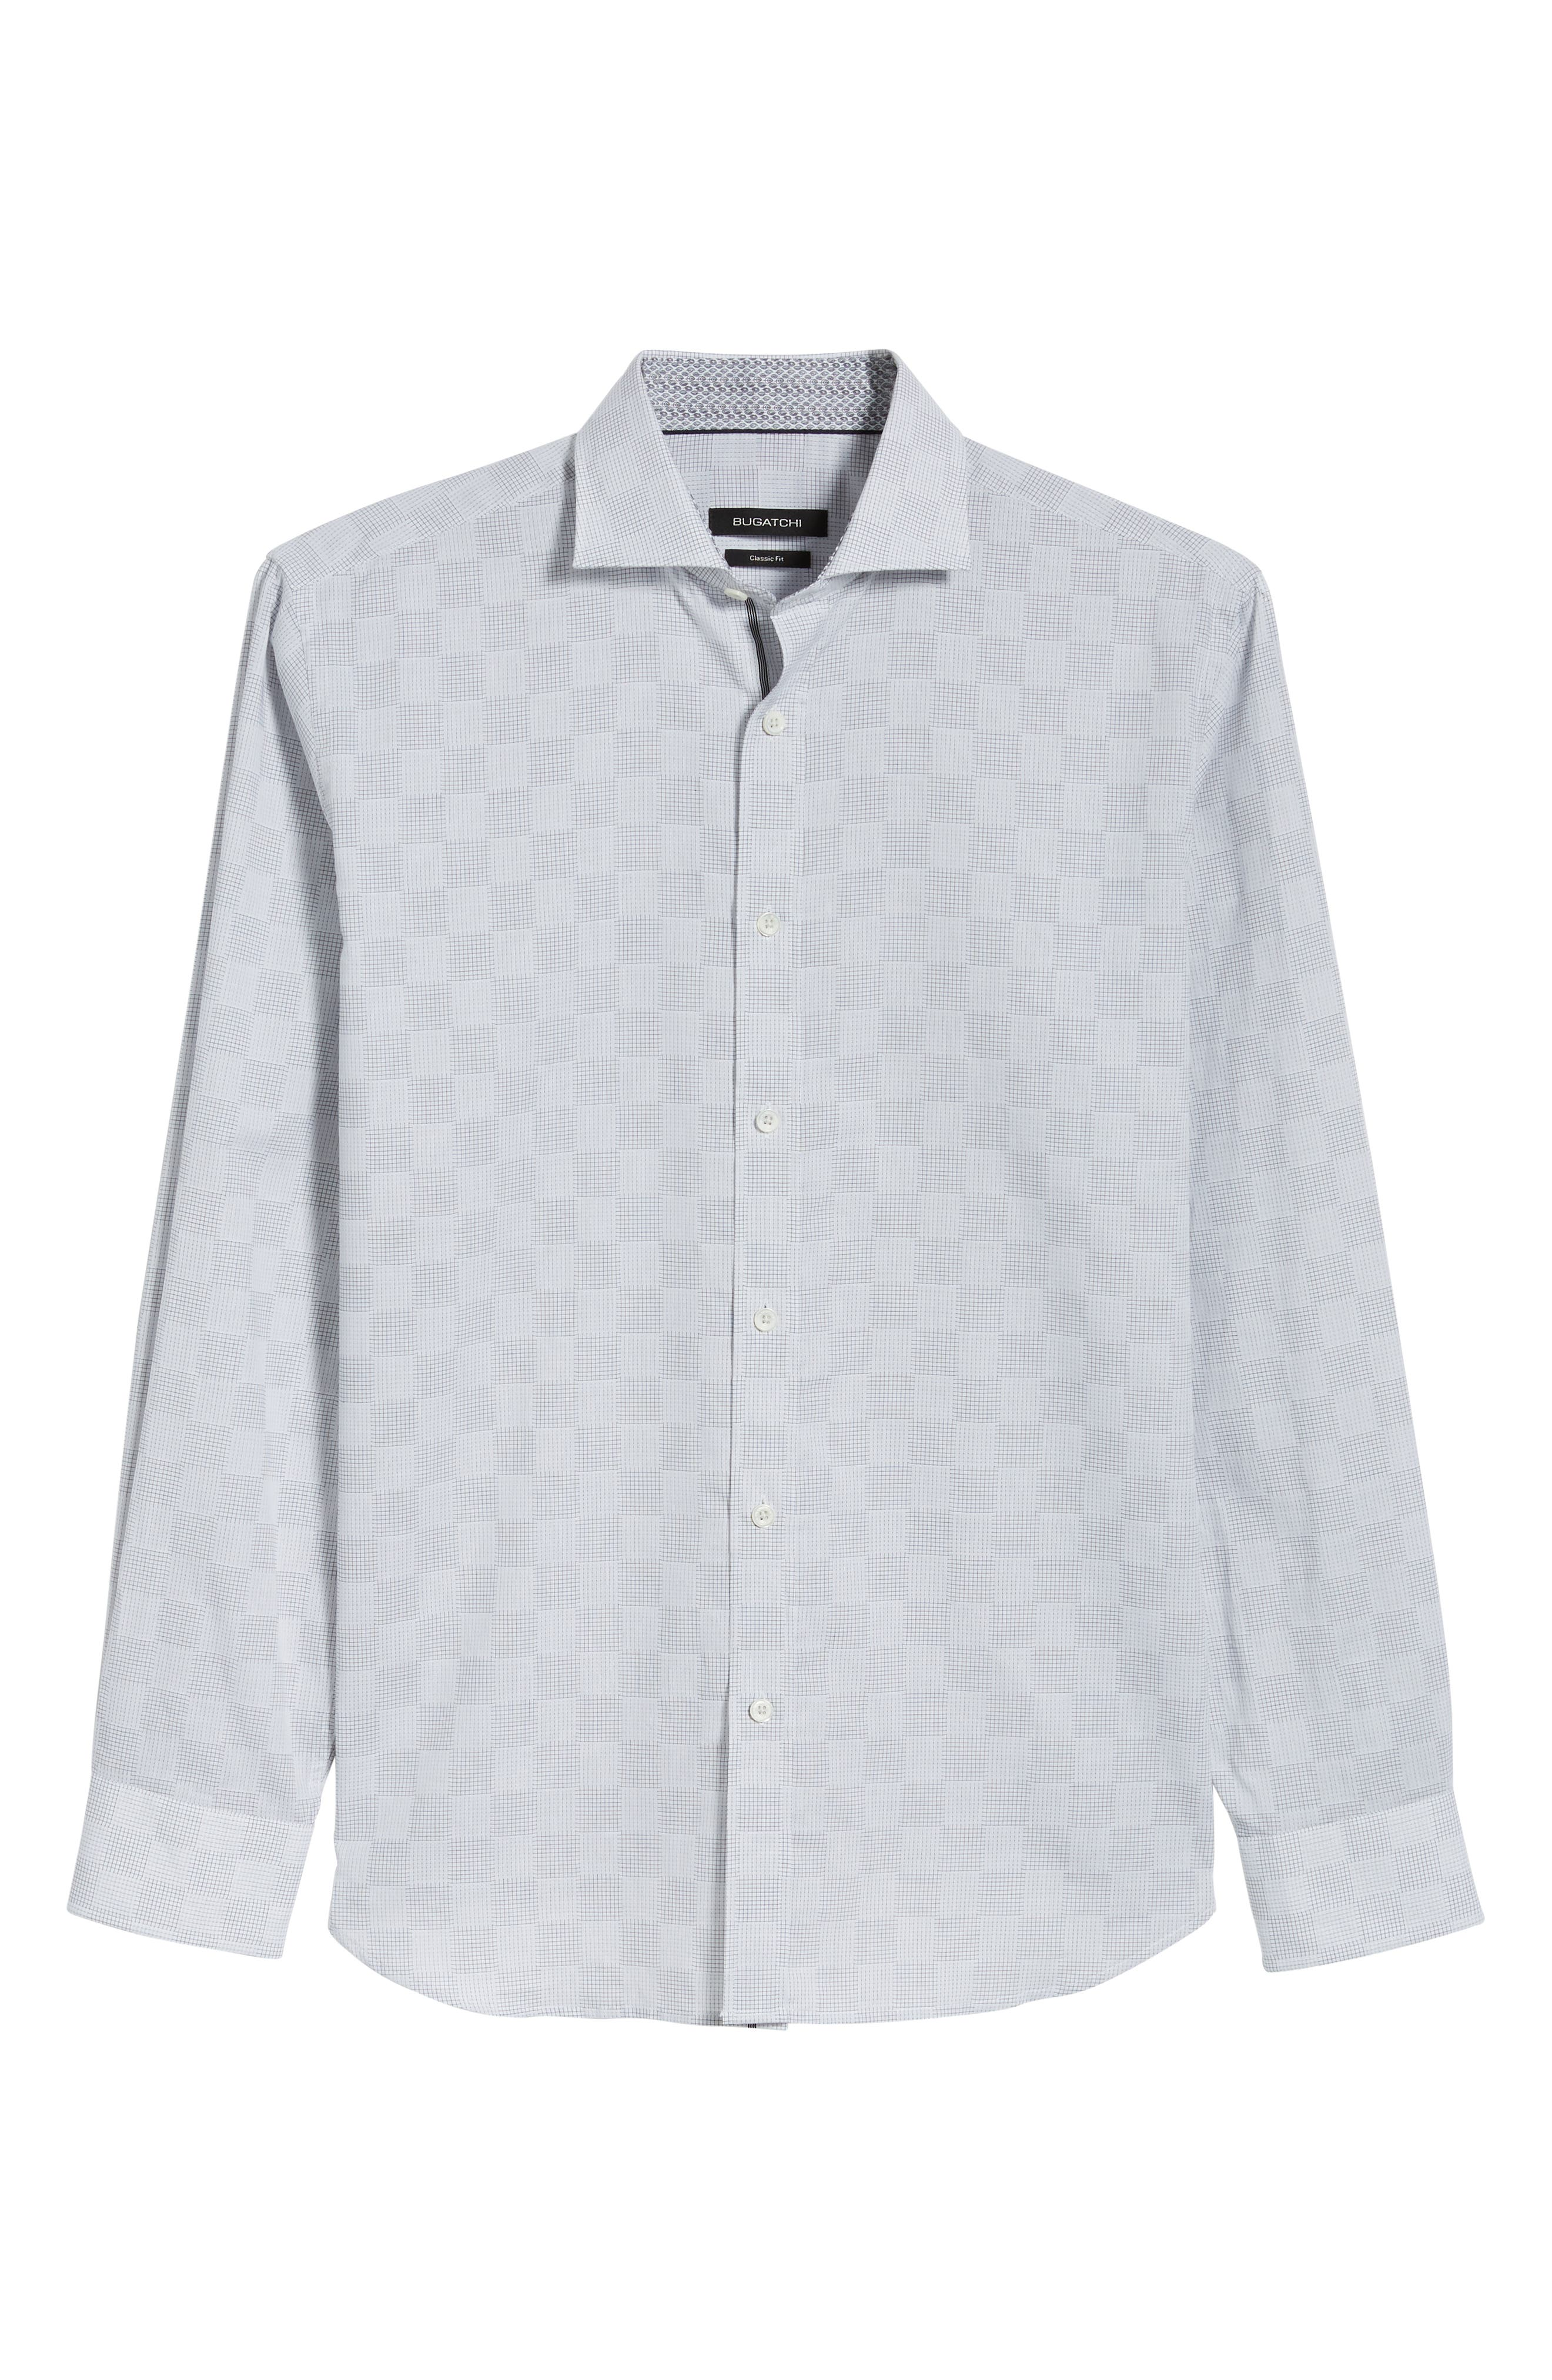 Classic Fit Checkerboard Print Sport Shirt,                             Alternate thumbnail 6, color,                             020